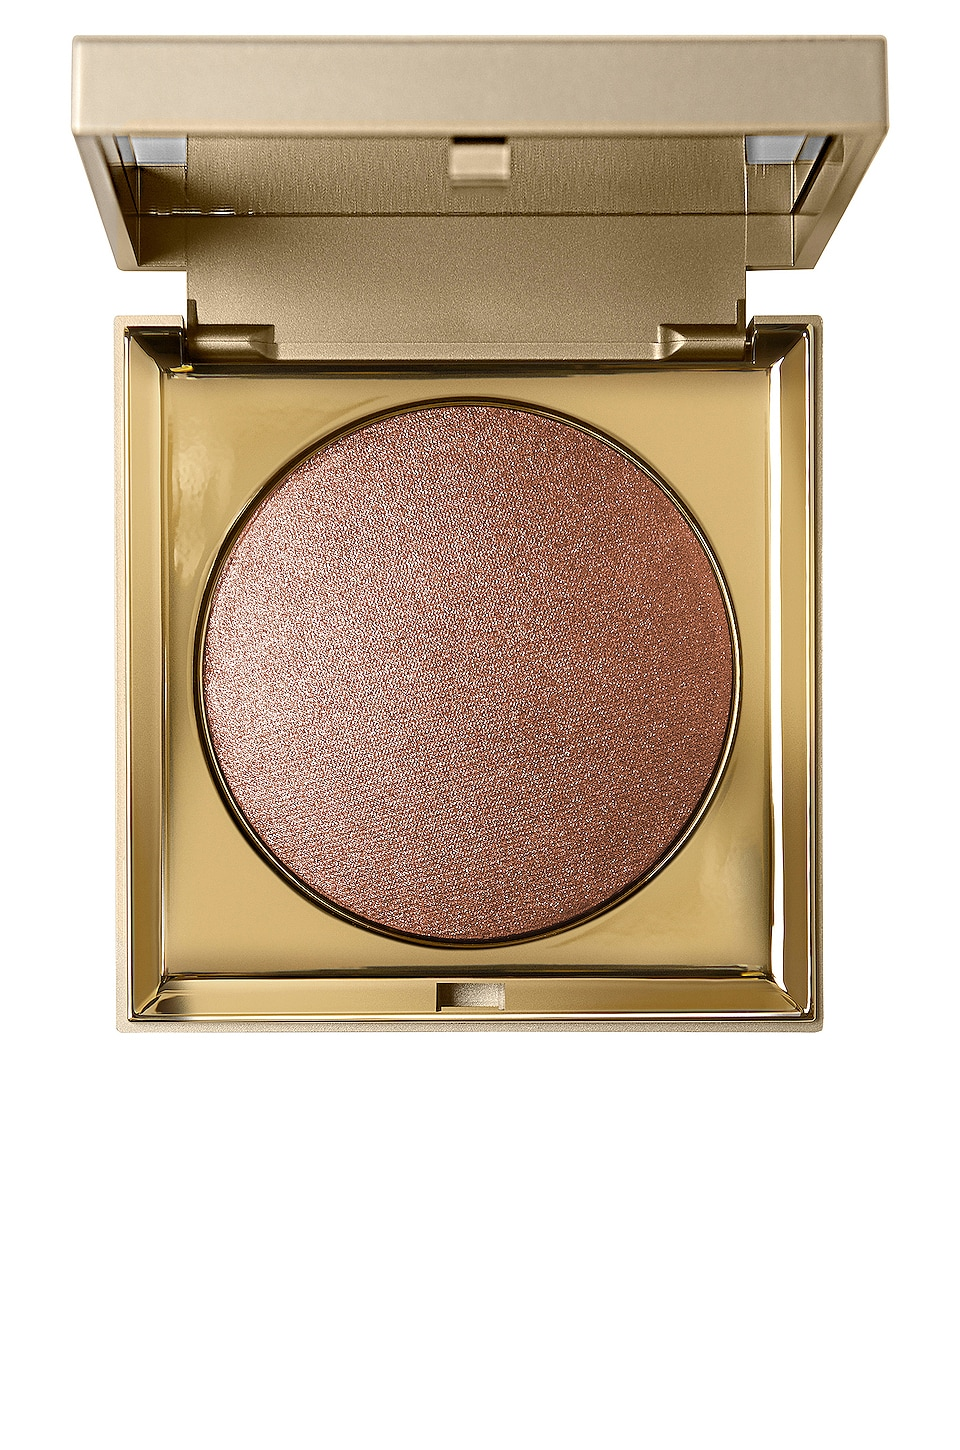 Stila Heaven's Hue Highlighter in Magnificence